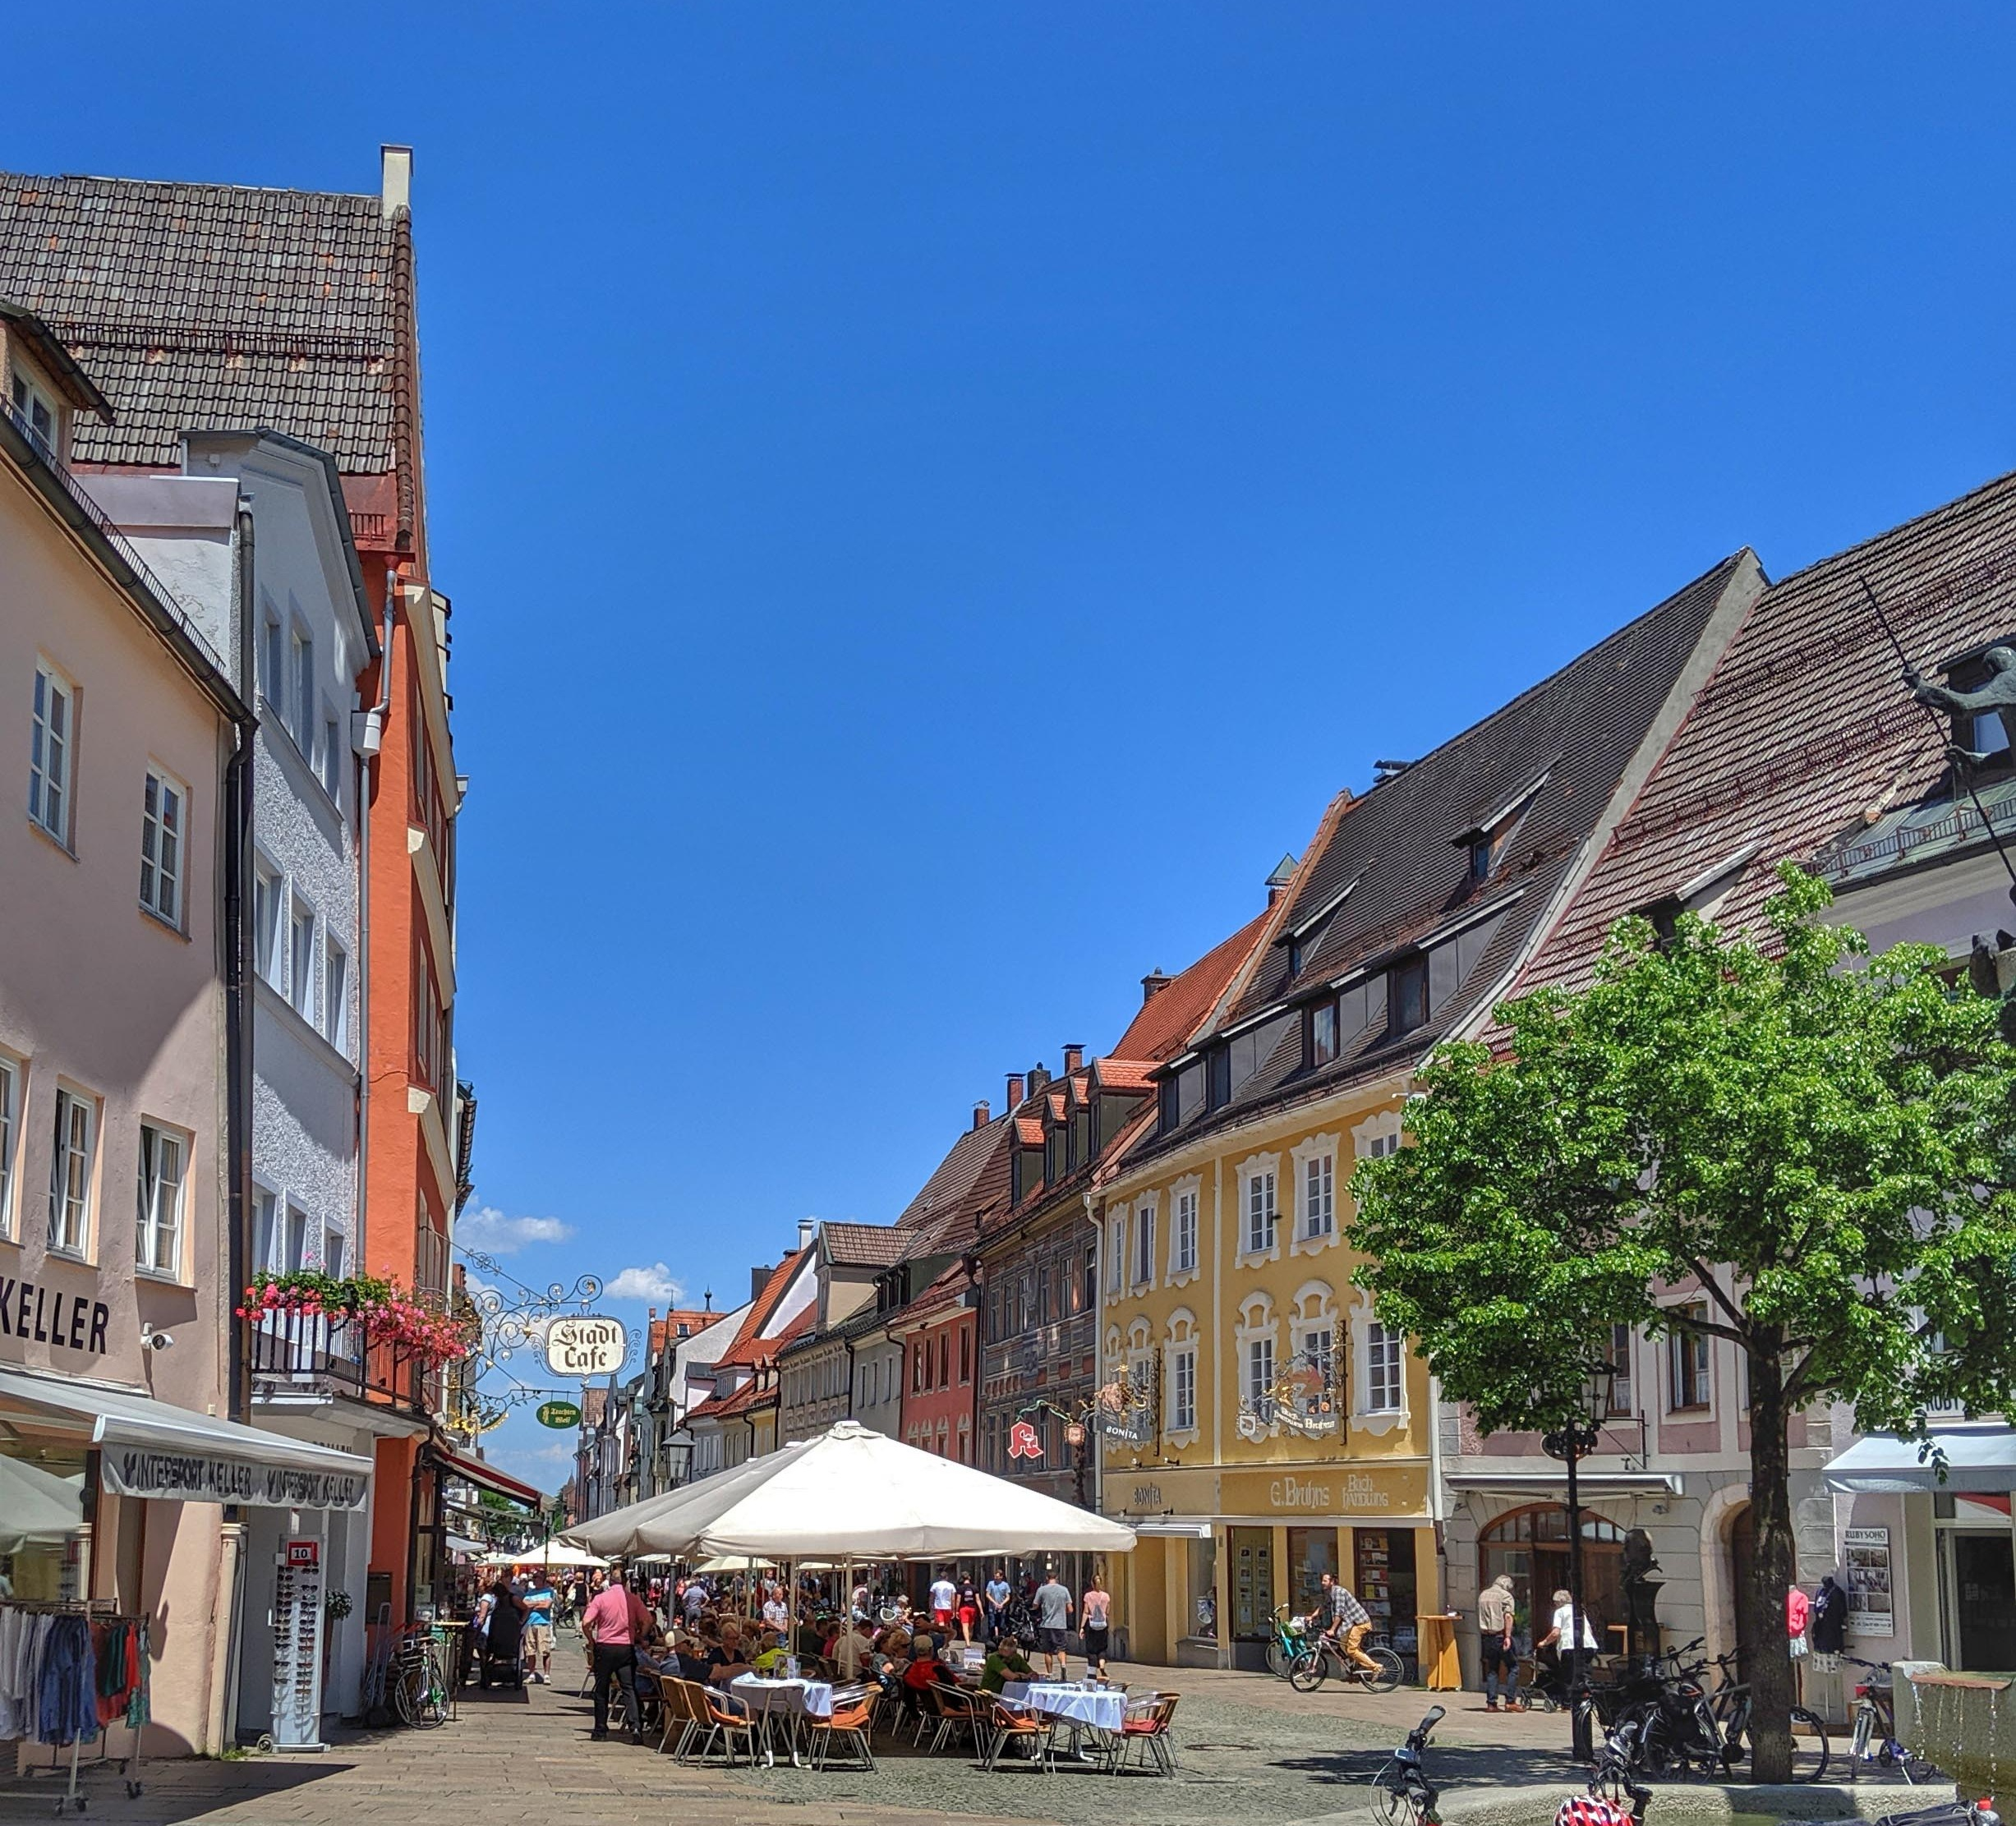 The lively streets of Füssen